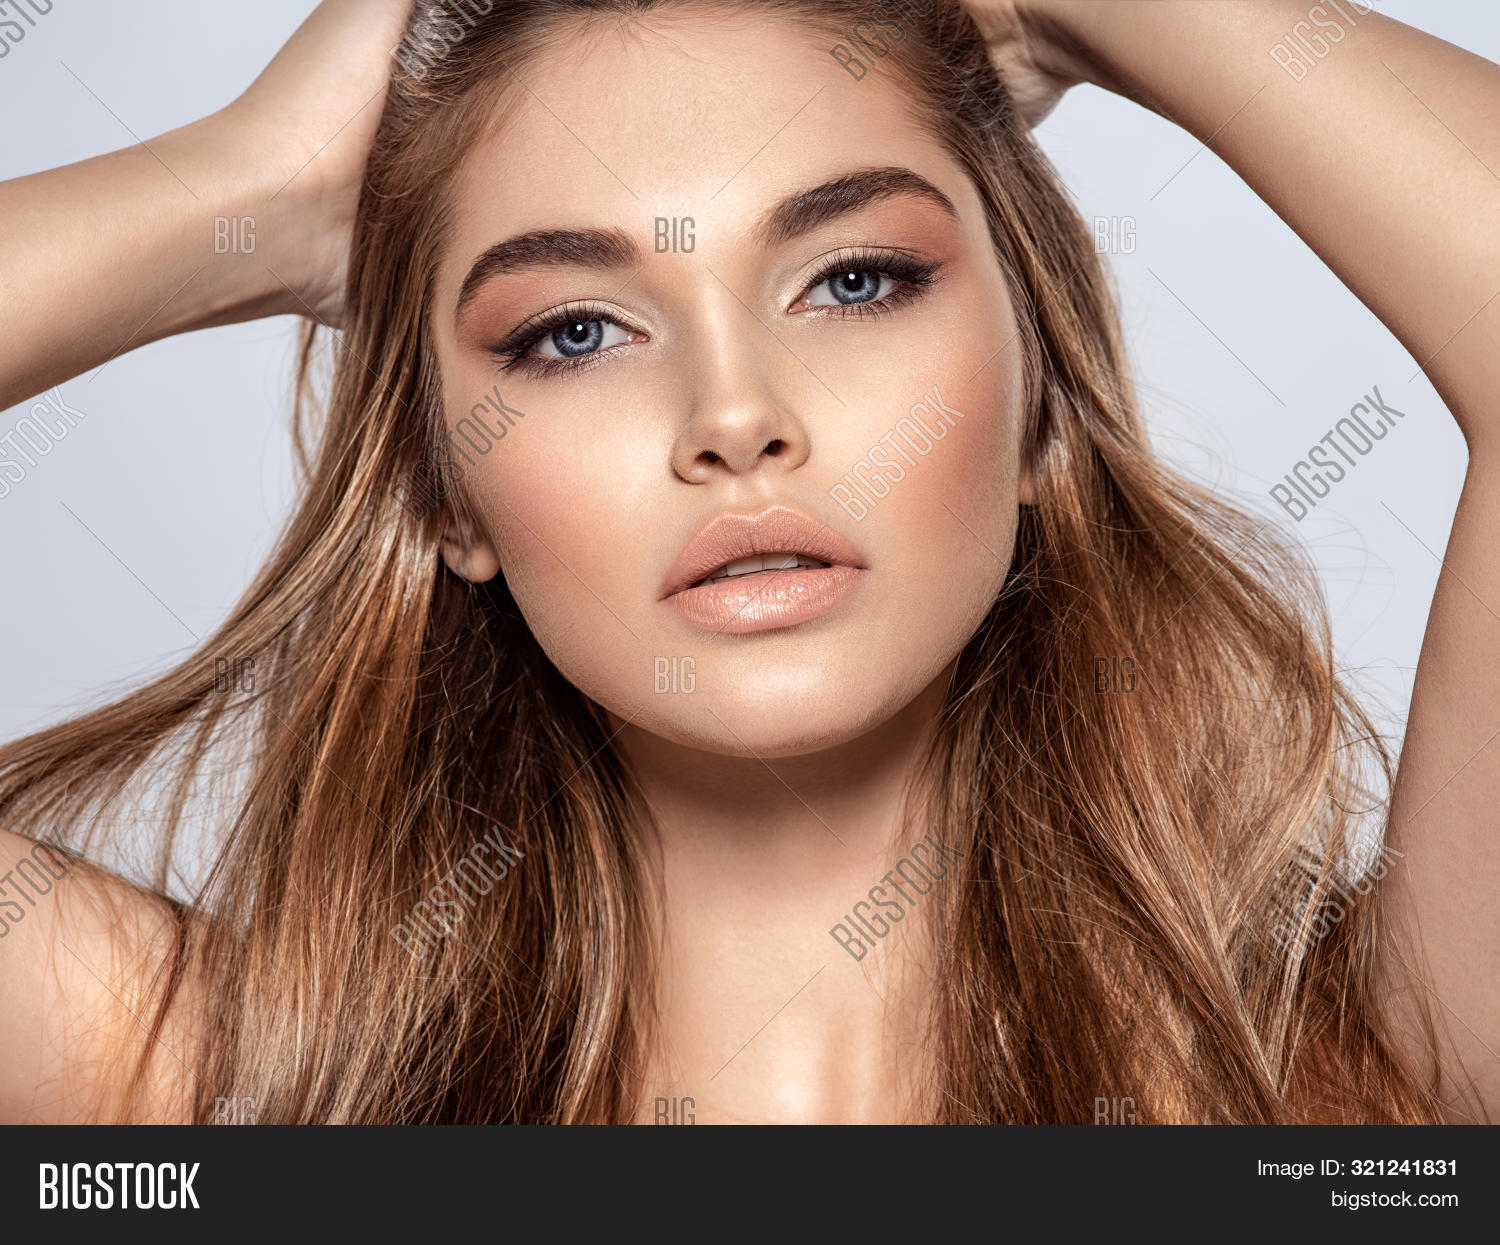 Woman with beauty long brown hair and natural makeup.  Beautiful face of an attractive  model with b